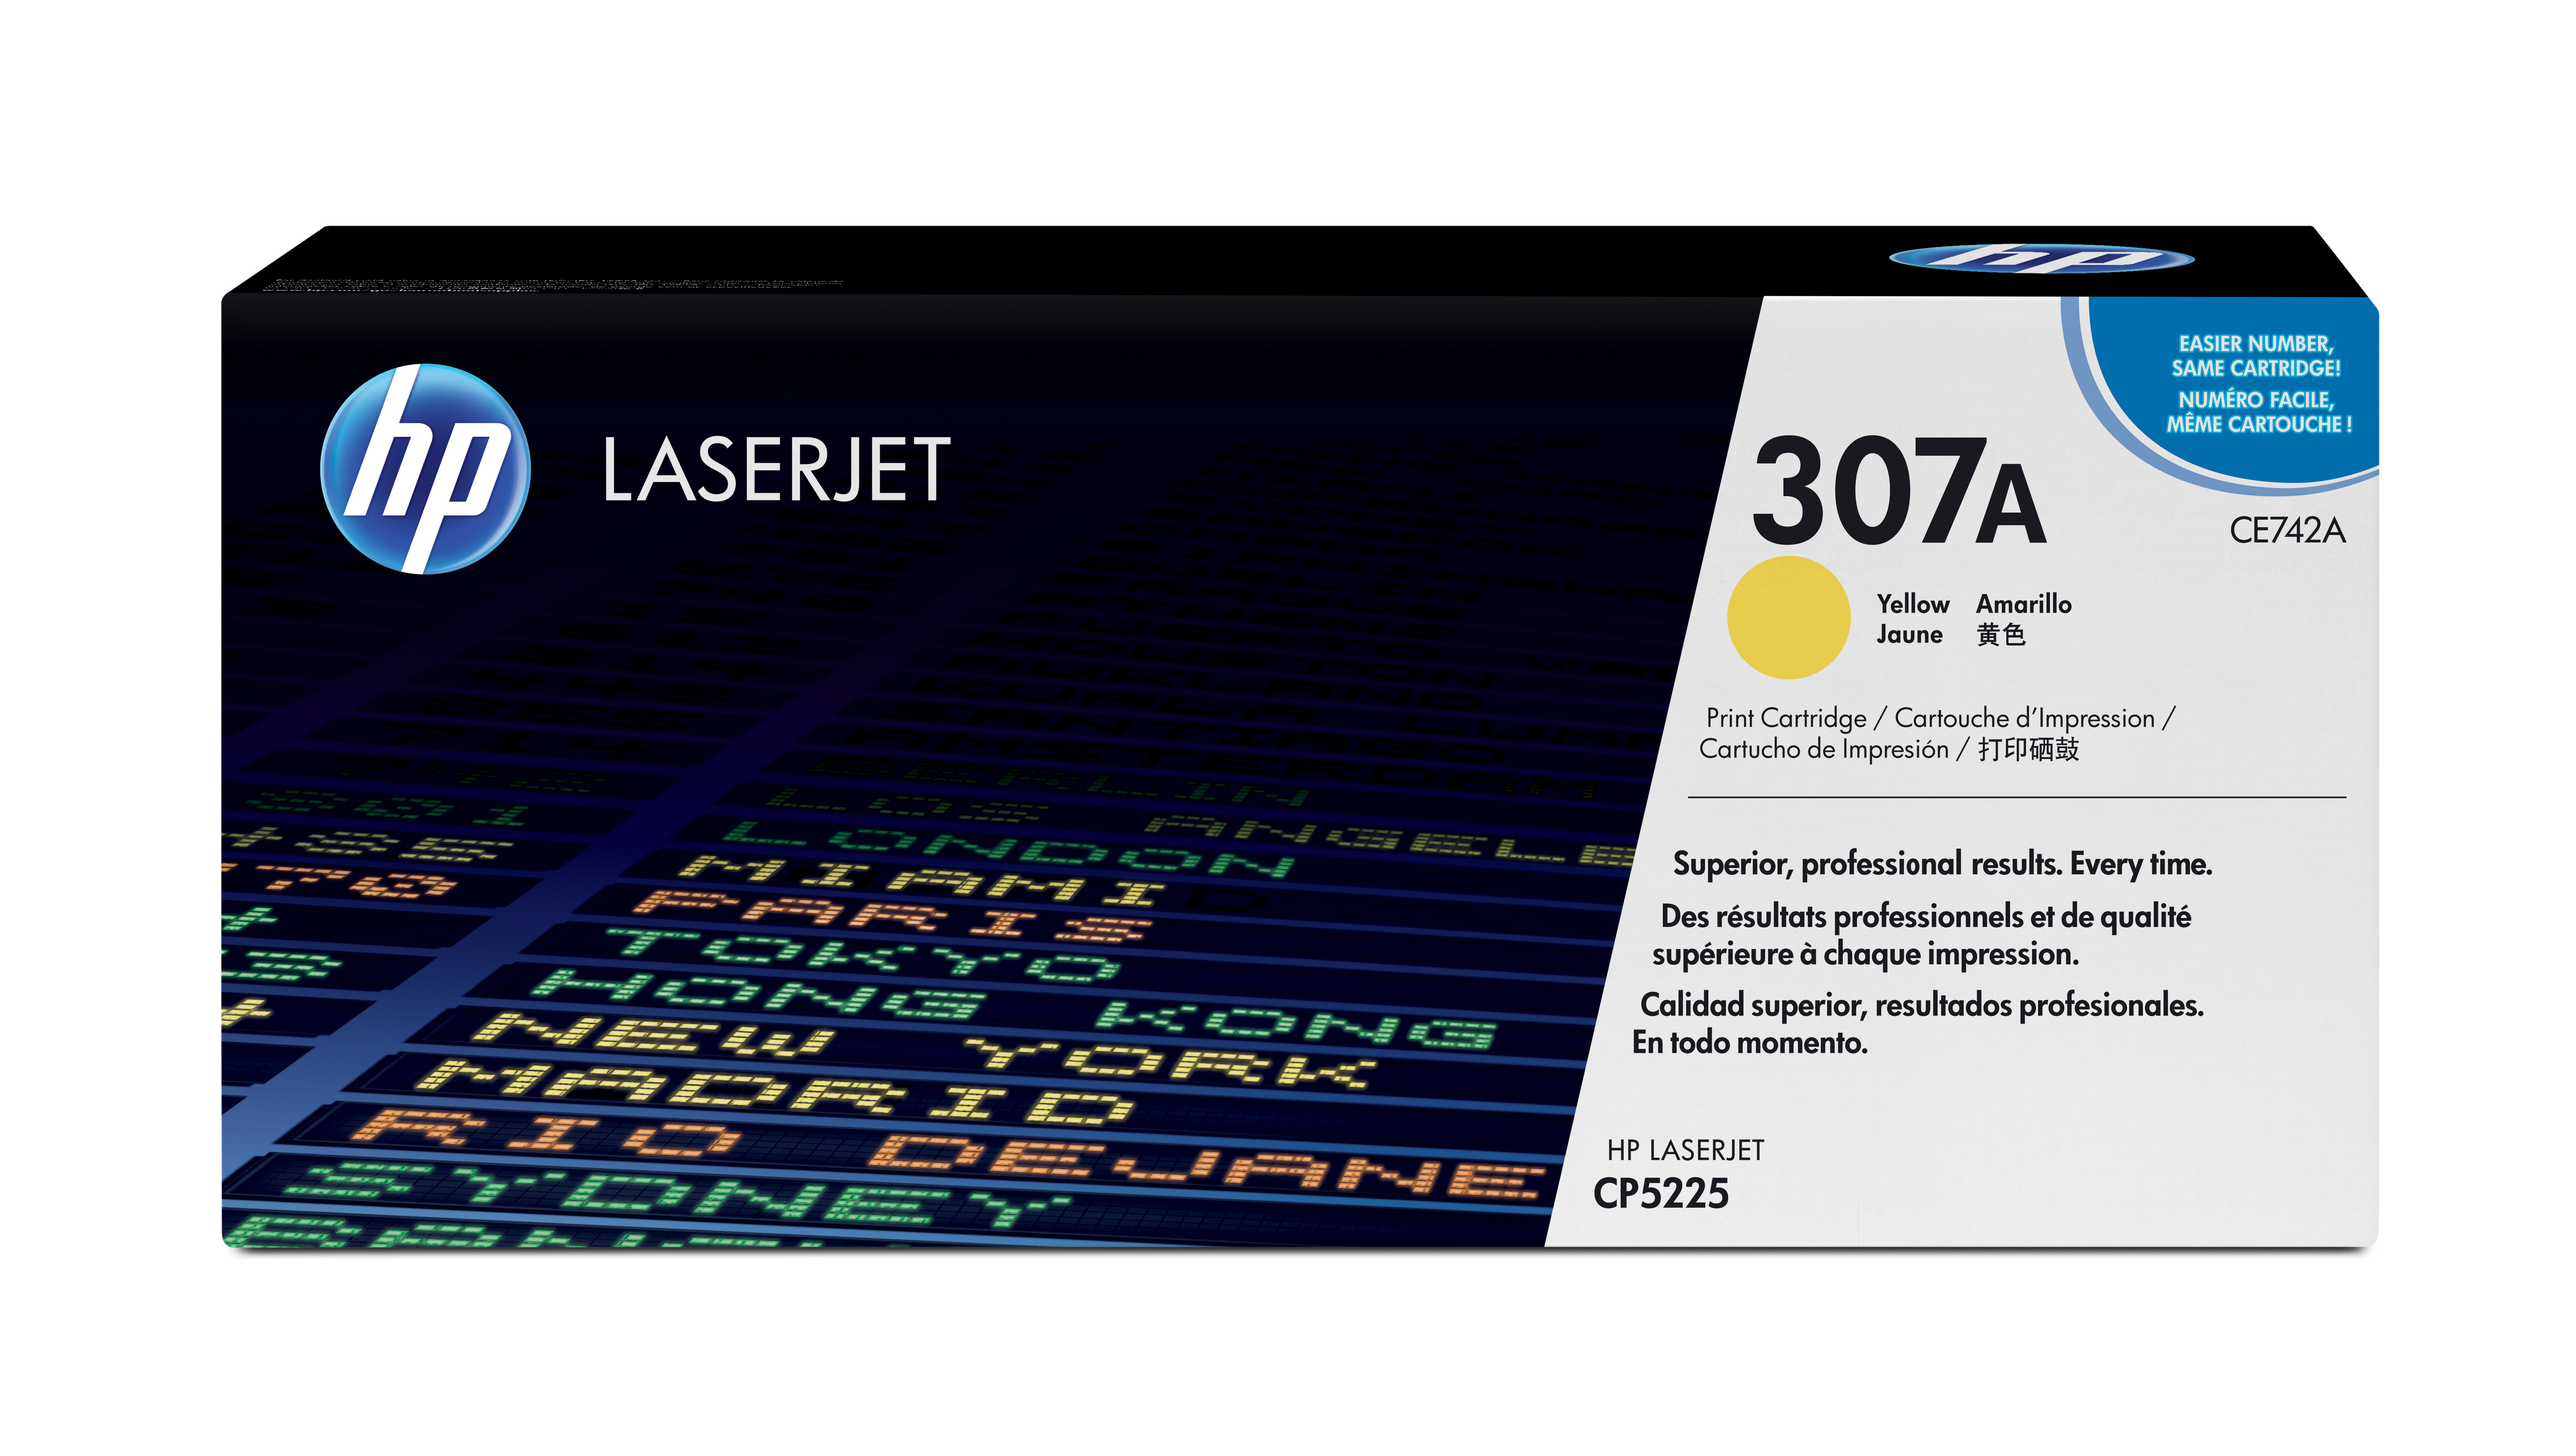 HP 307A Yellow Toner Cartridge CE742A